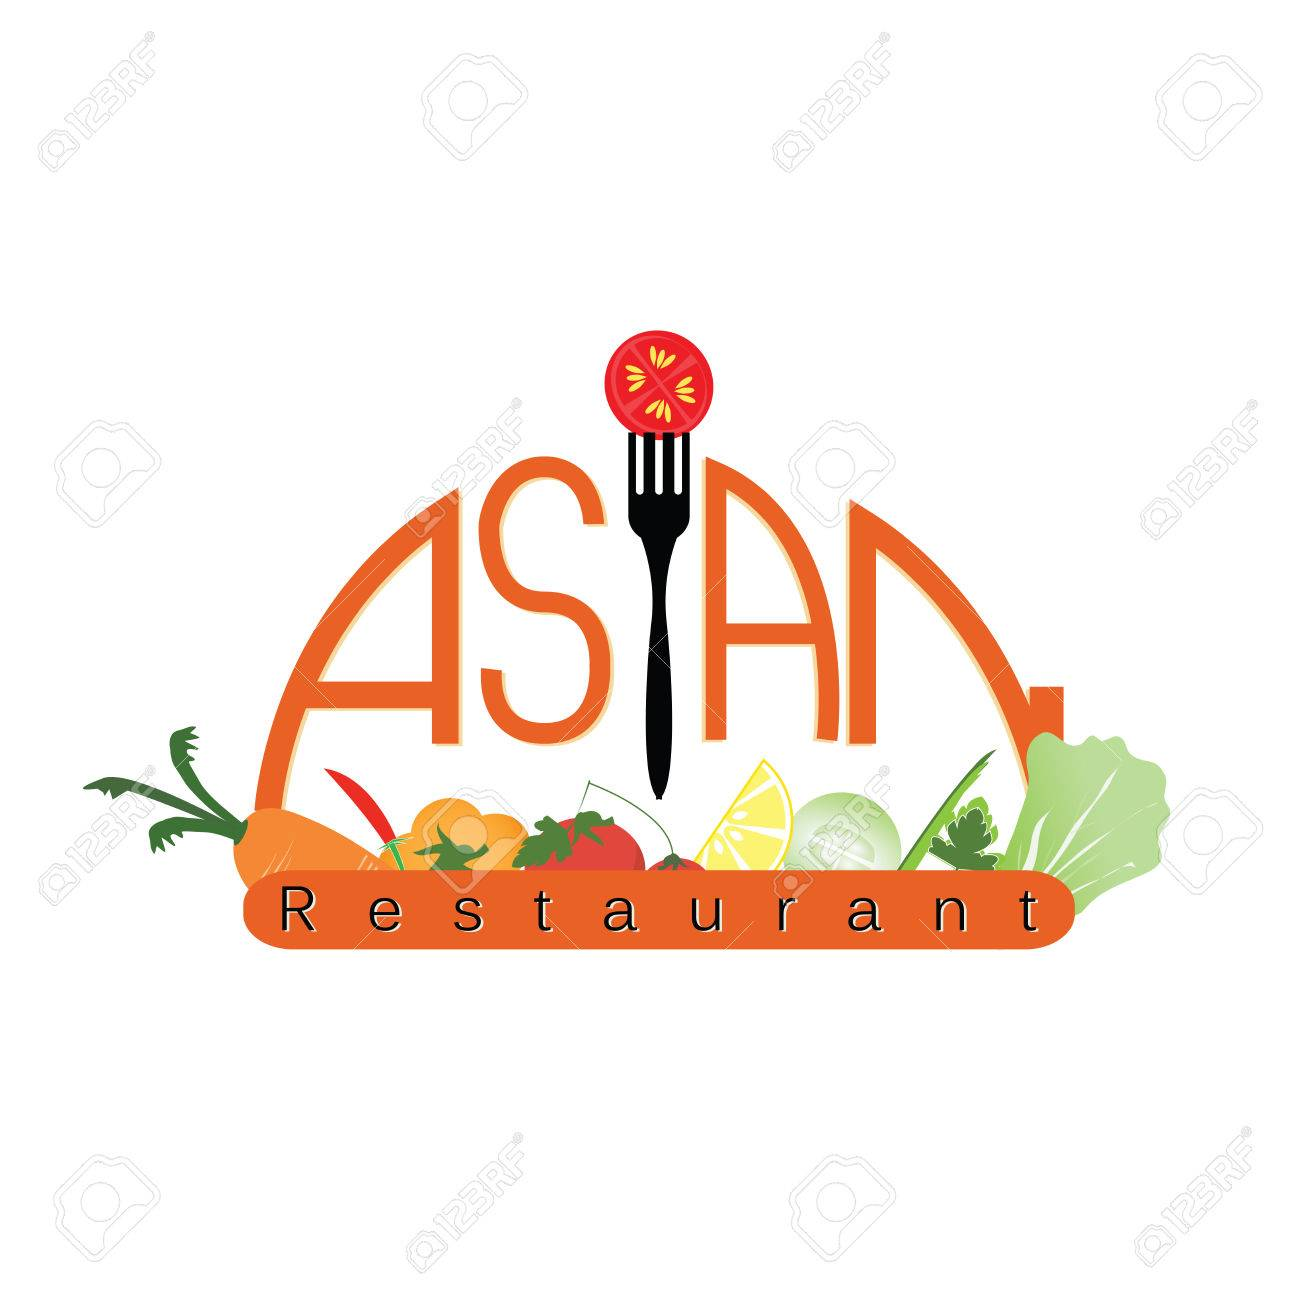 Logo For Asian Restaurant Design For Restaurants And Cafes, Creative  Concept Vector Illustration. Stock